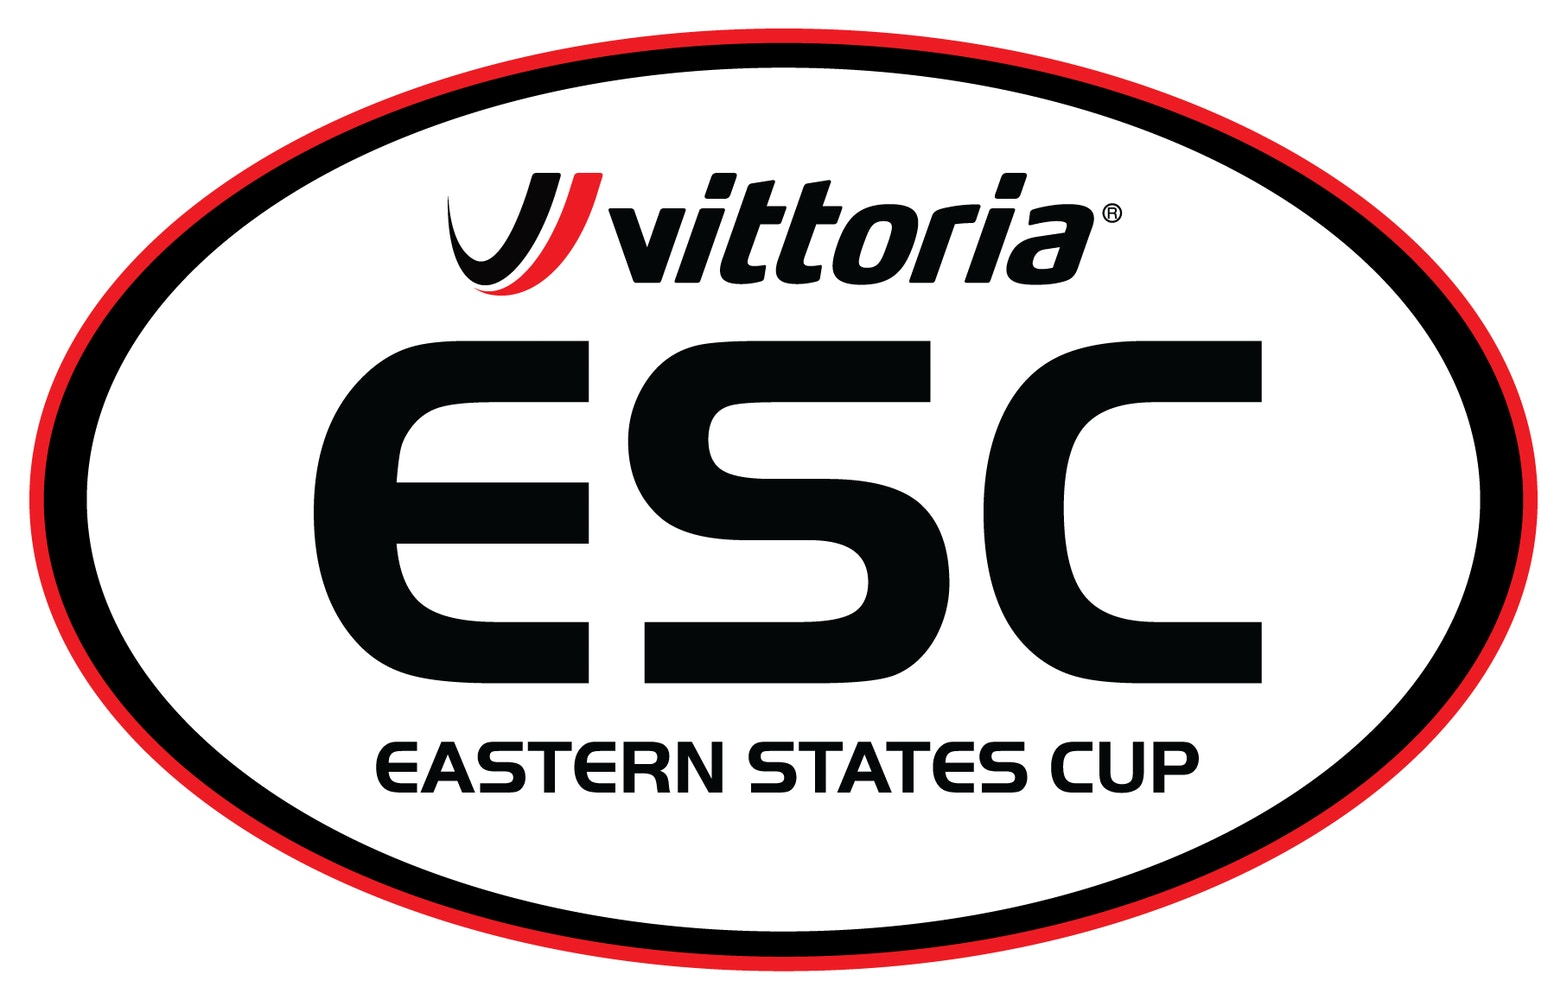 Vittoria Eastern States Cup - Race Schedule Released!